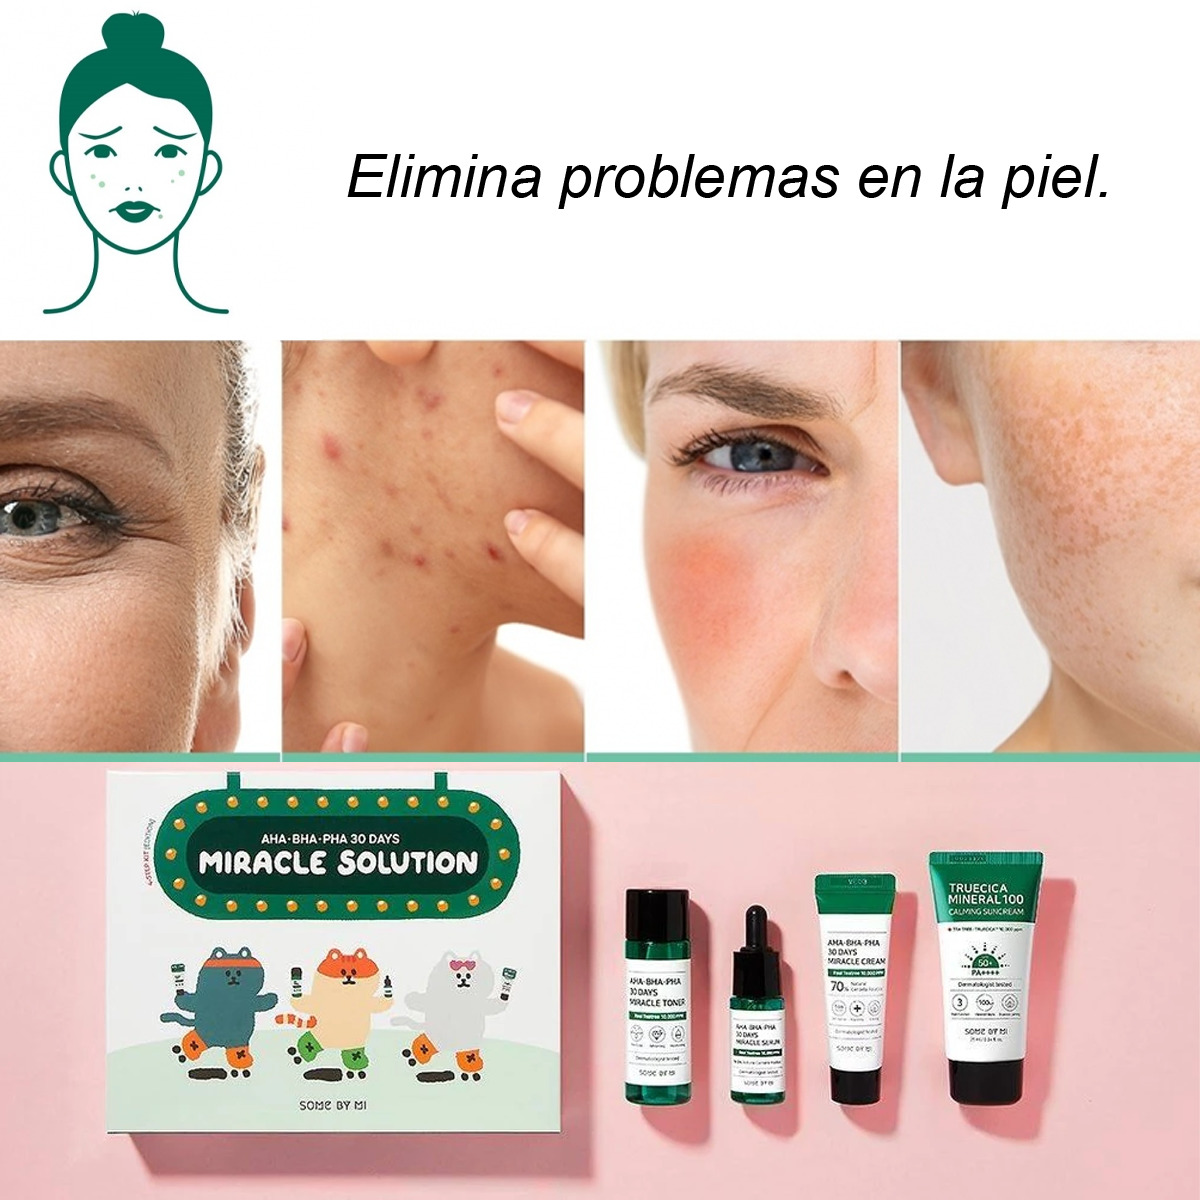 Kit 4 Pasos Elimina Acné Y Mejora La Piel 30 Days Miracle Solution Some By Mi